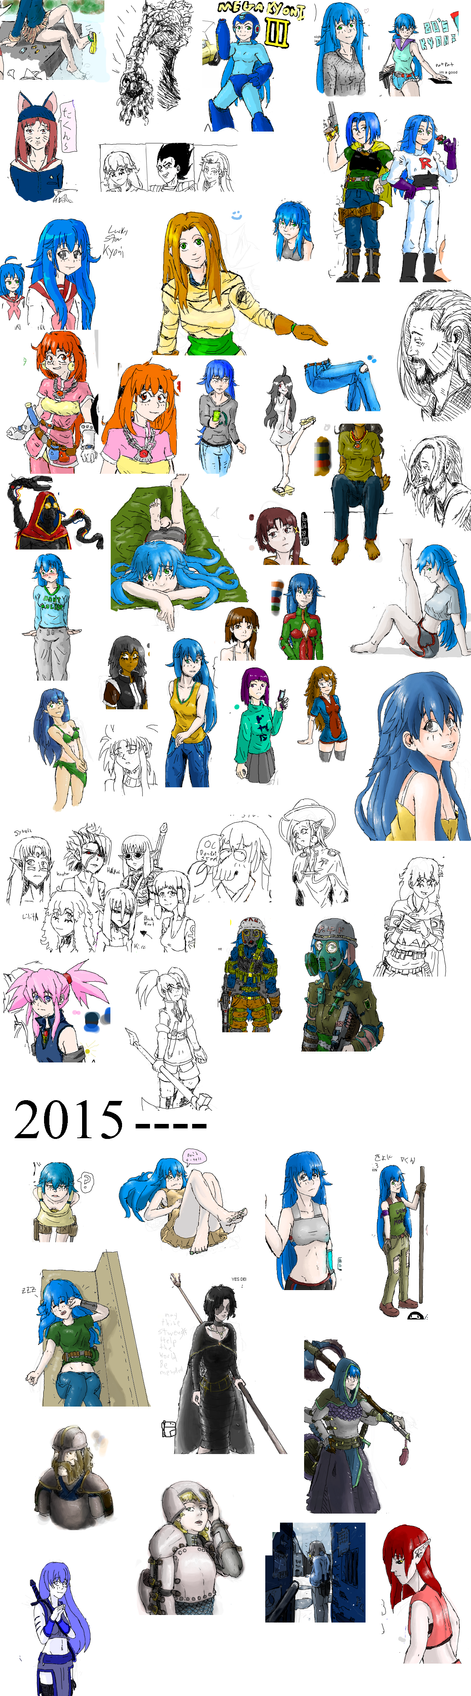 Sketch Dump late 2014- Feb 2015 by zerothe3rd